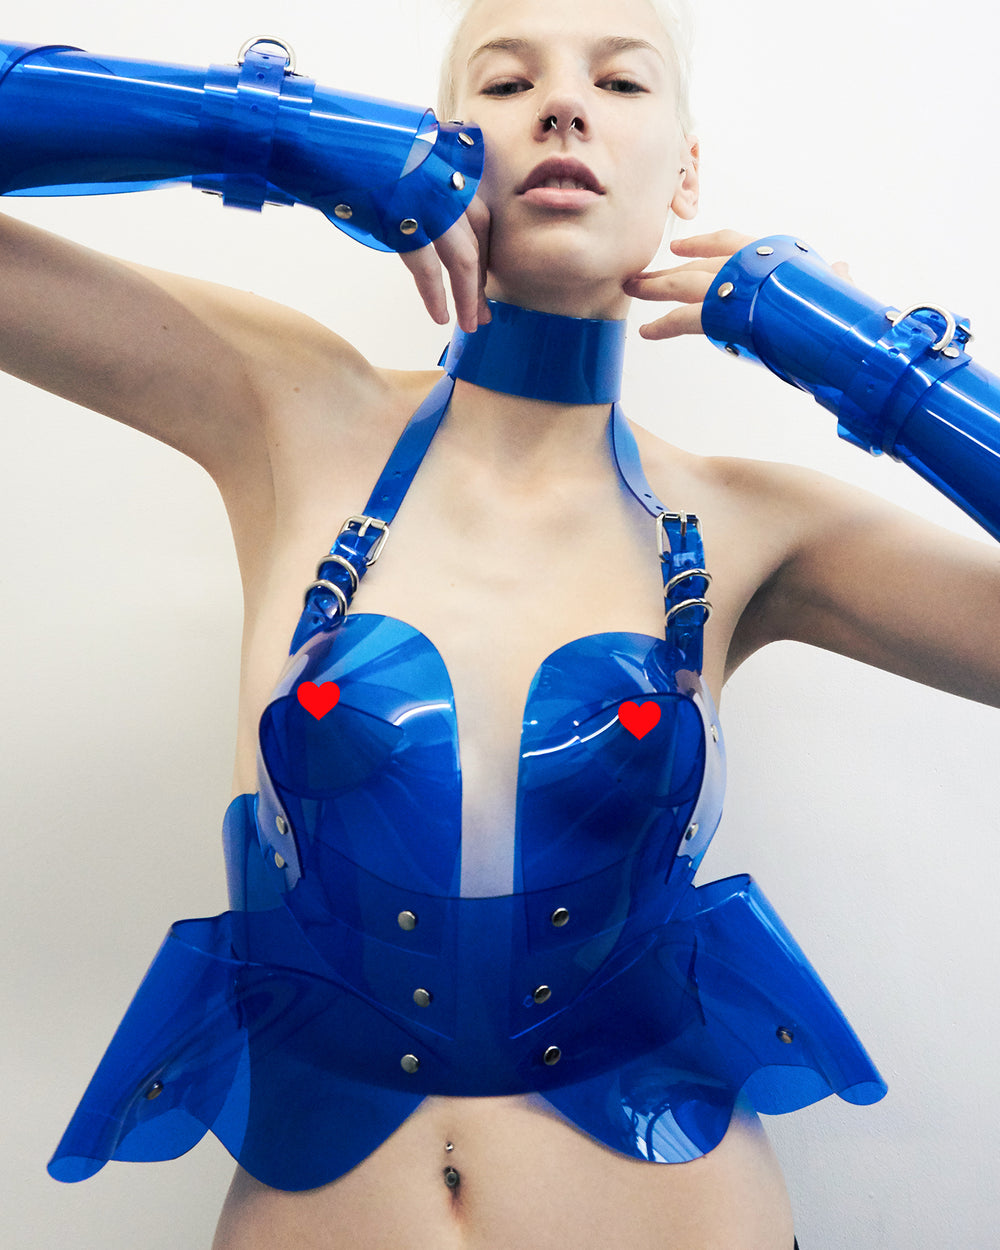 Jivomir Domoustchiev all NEW vinyl body sculpture bustier